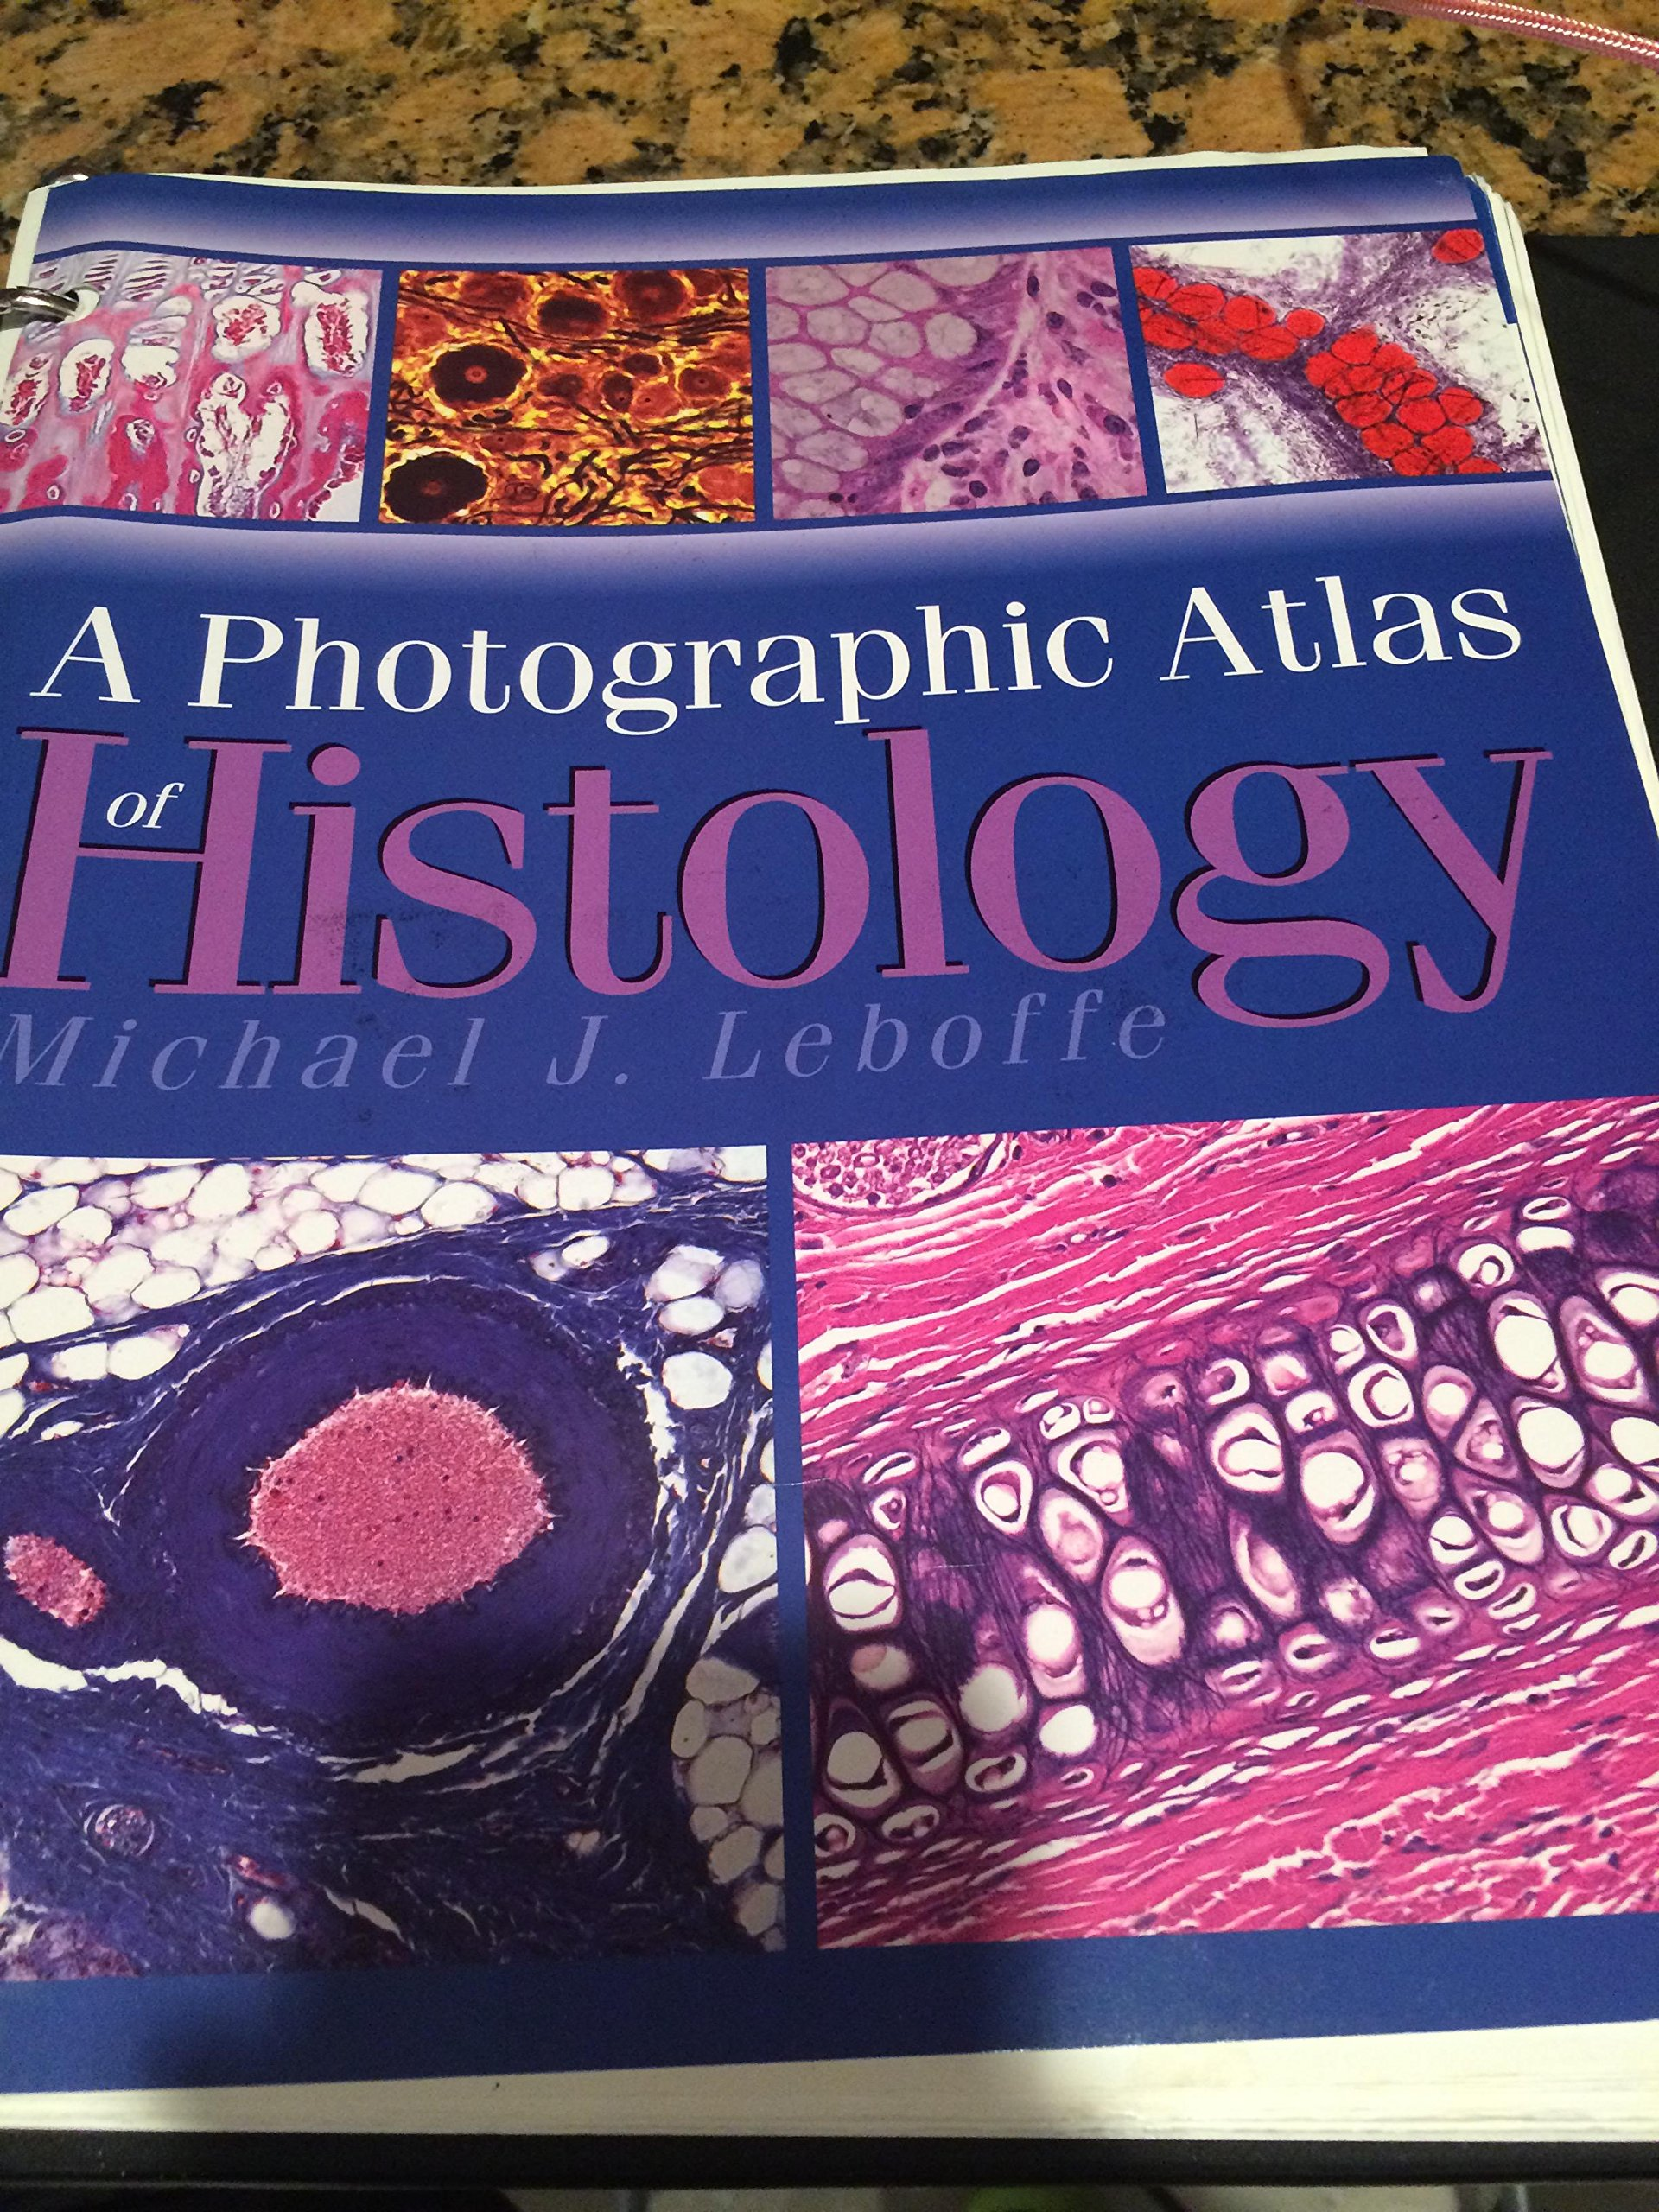 A Photographic Atlas of Histology: Michael J. Leboffe: 9780895826053 ...